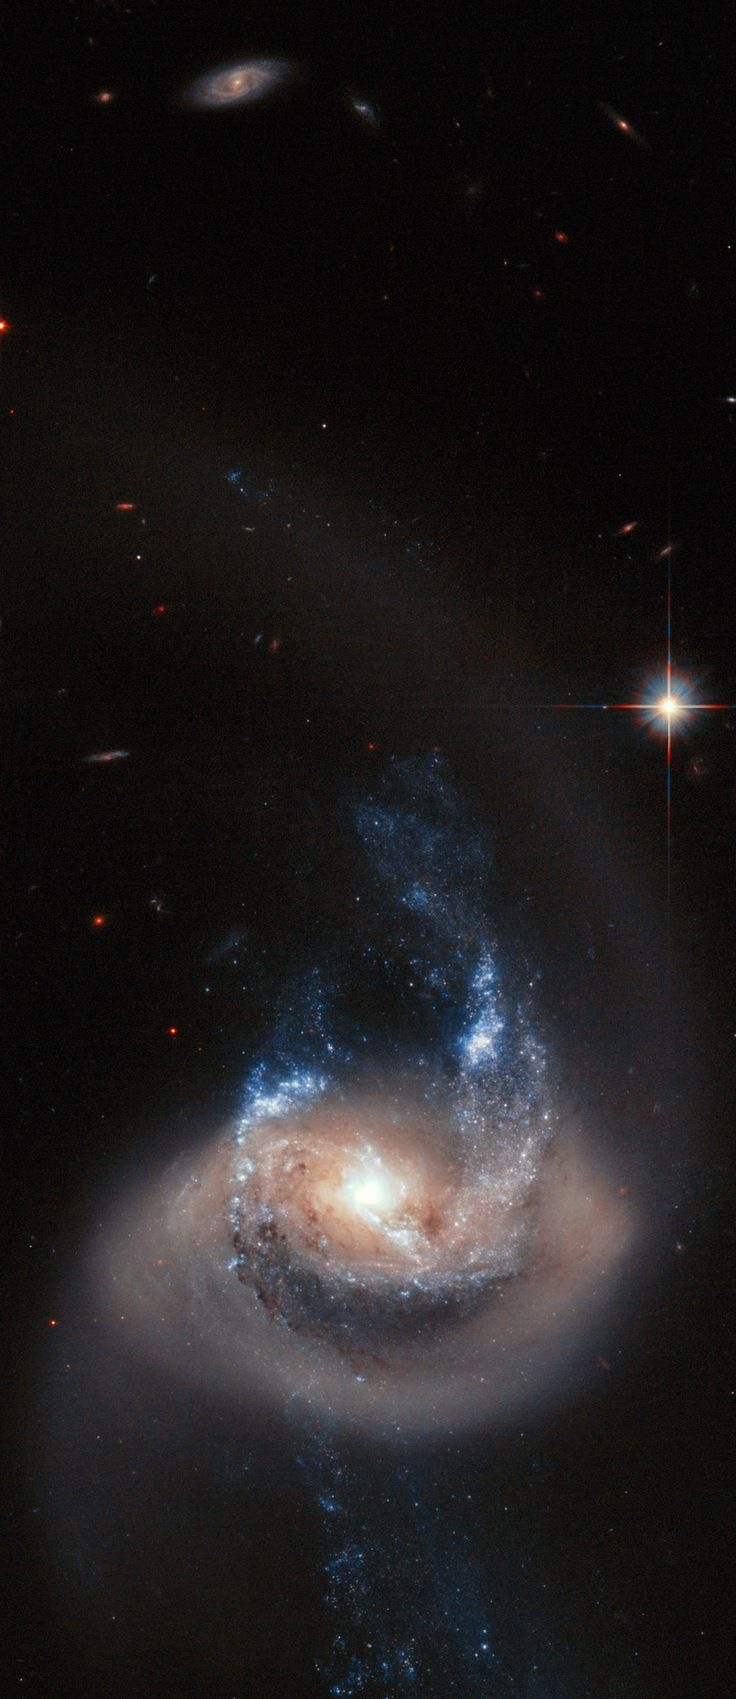 NGC 7714 ~ This unusual structure is a river of Sun-like stars that has been pulled deep into space by the gravitational tug of a by a passing galaxy, not seen in this Hubble Space Telescope photo. That's because the near-collision between the galaxies happened at least 100 million years ago.